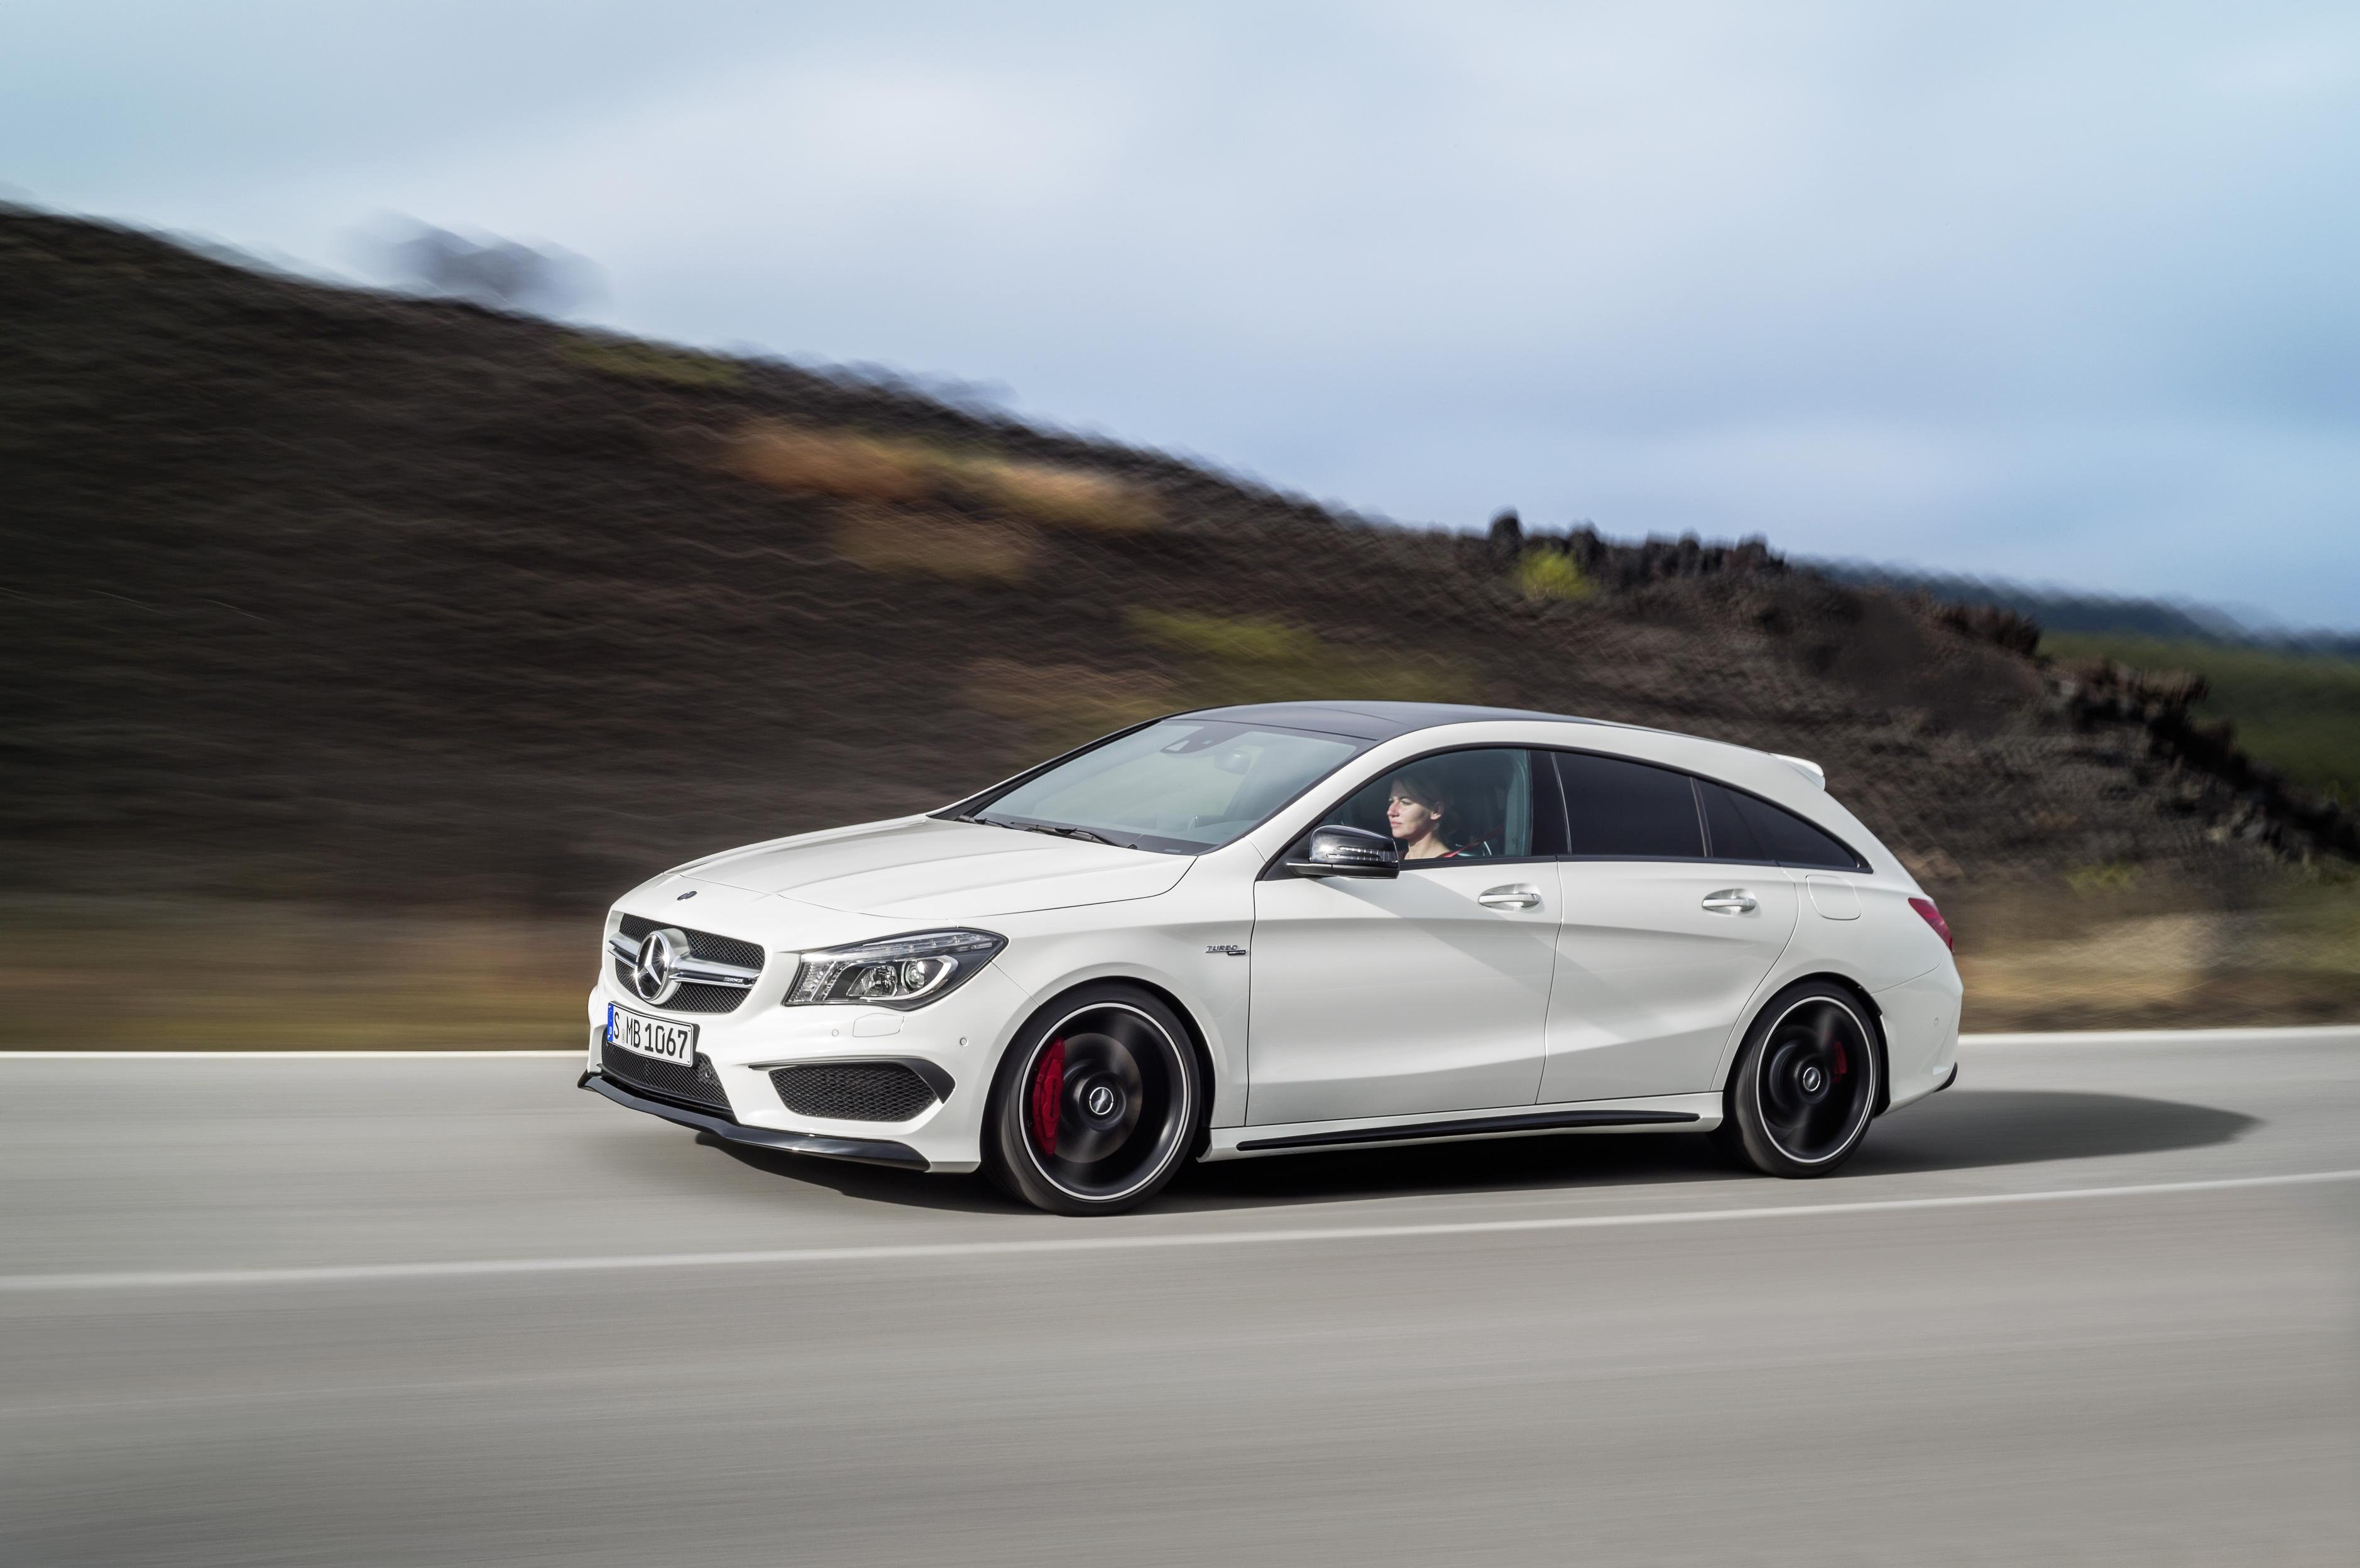 mercedes cla shooting brake j tem pre os para portugal. Black Bedroom Furniture Sets. Home Design Ideas